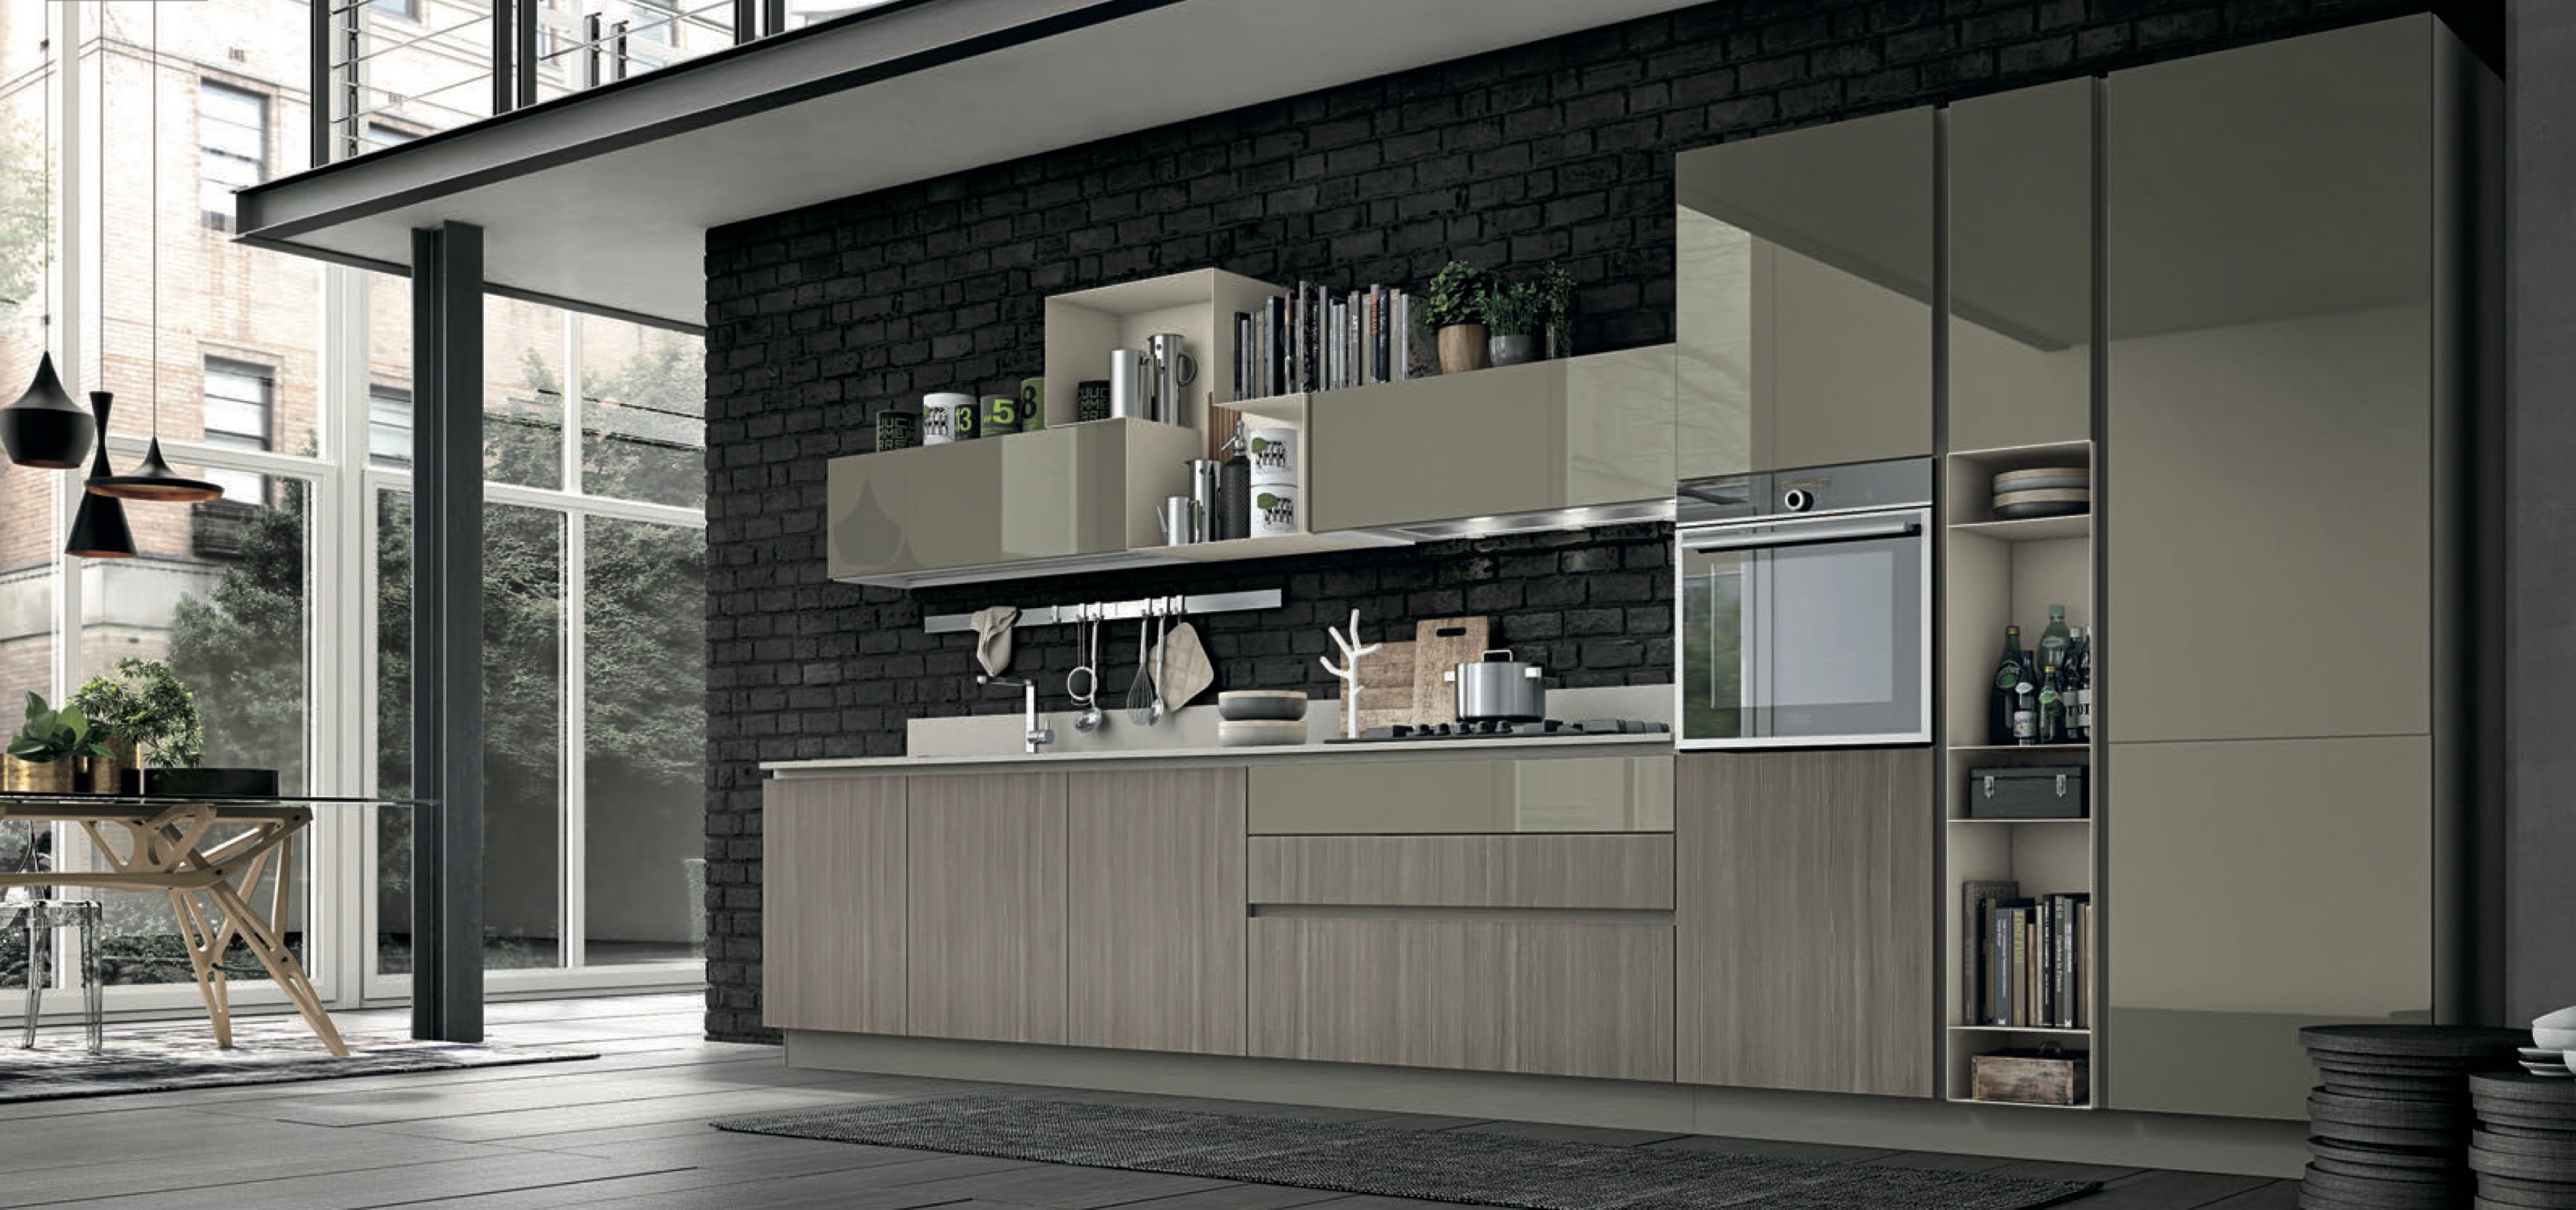 Different Kitchen Style For Modular Kitchen In India By Stosa Cucine India Medium